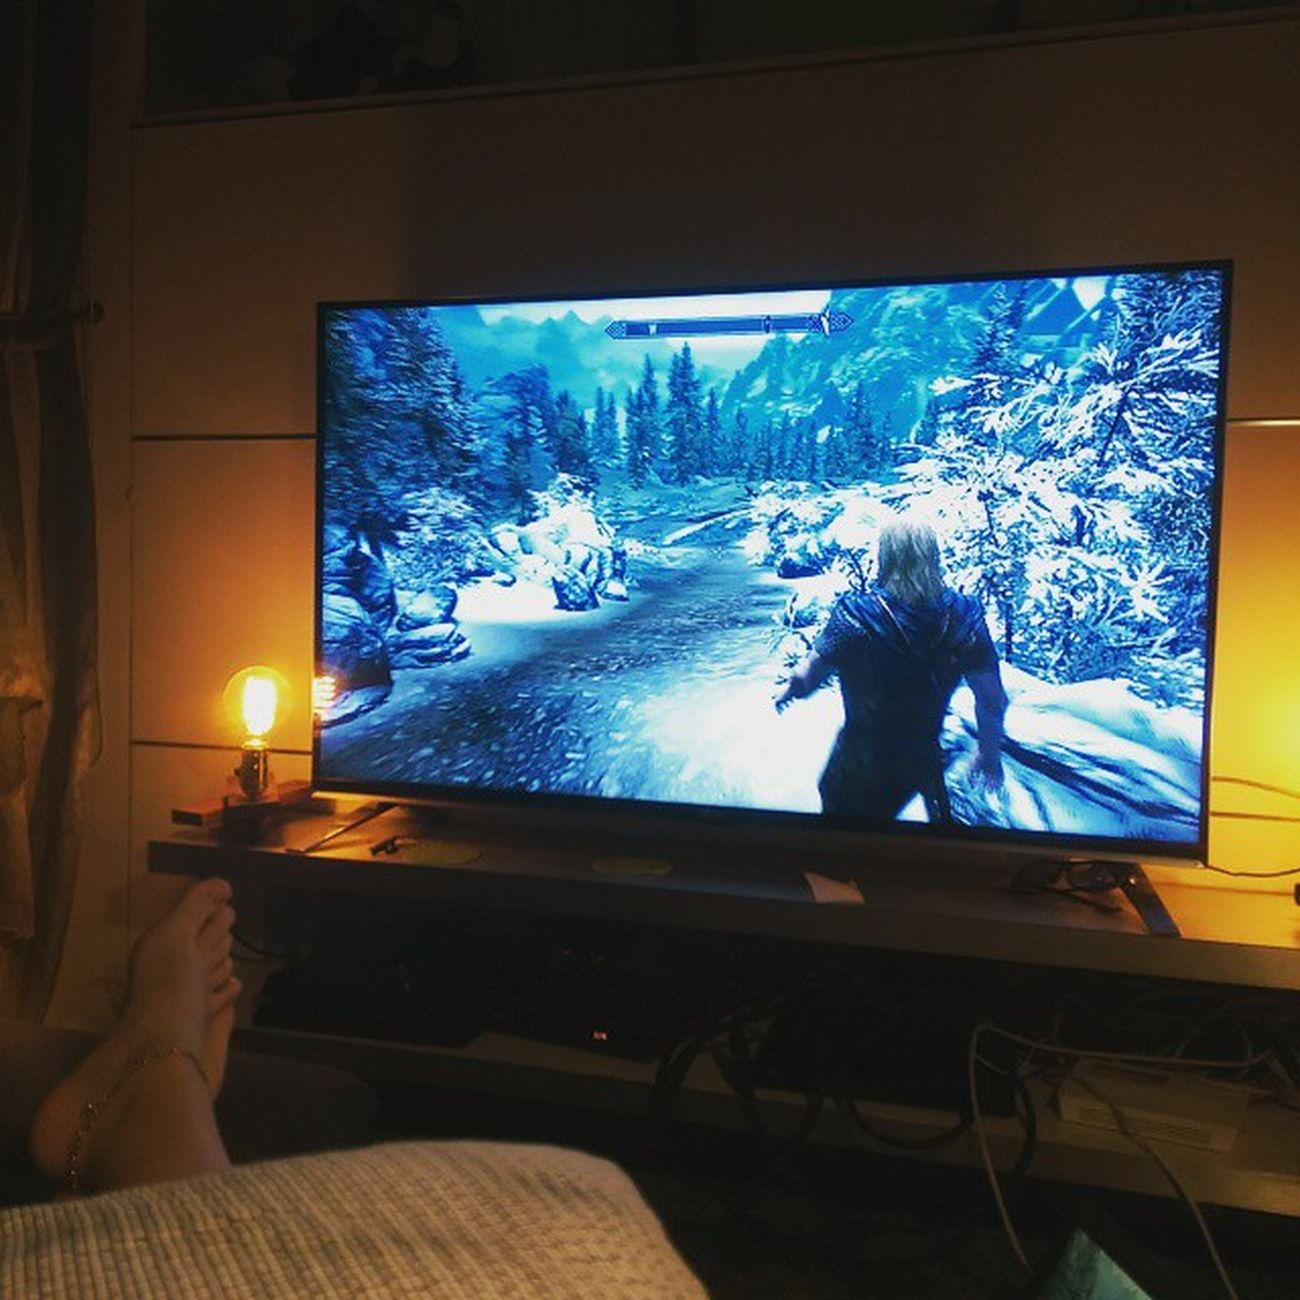 Watching boyf play Antrim as I refuse to start a new game. XBox is definitely coming to Hong Kong after Christmas! Sundayskyrim Gaming Bestgameever